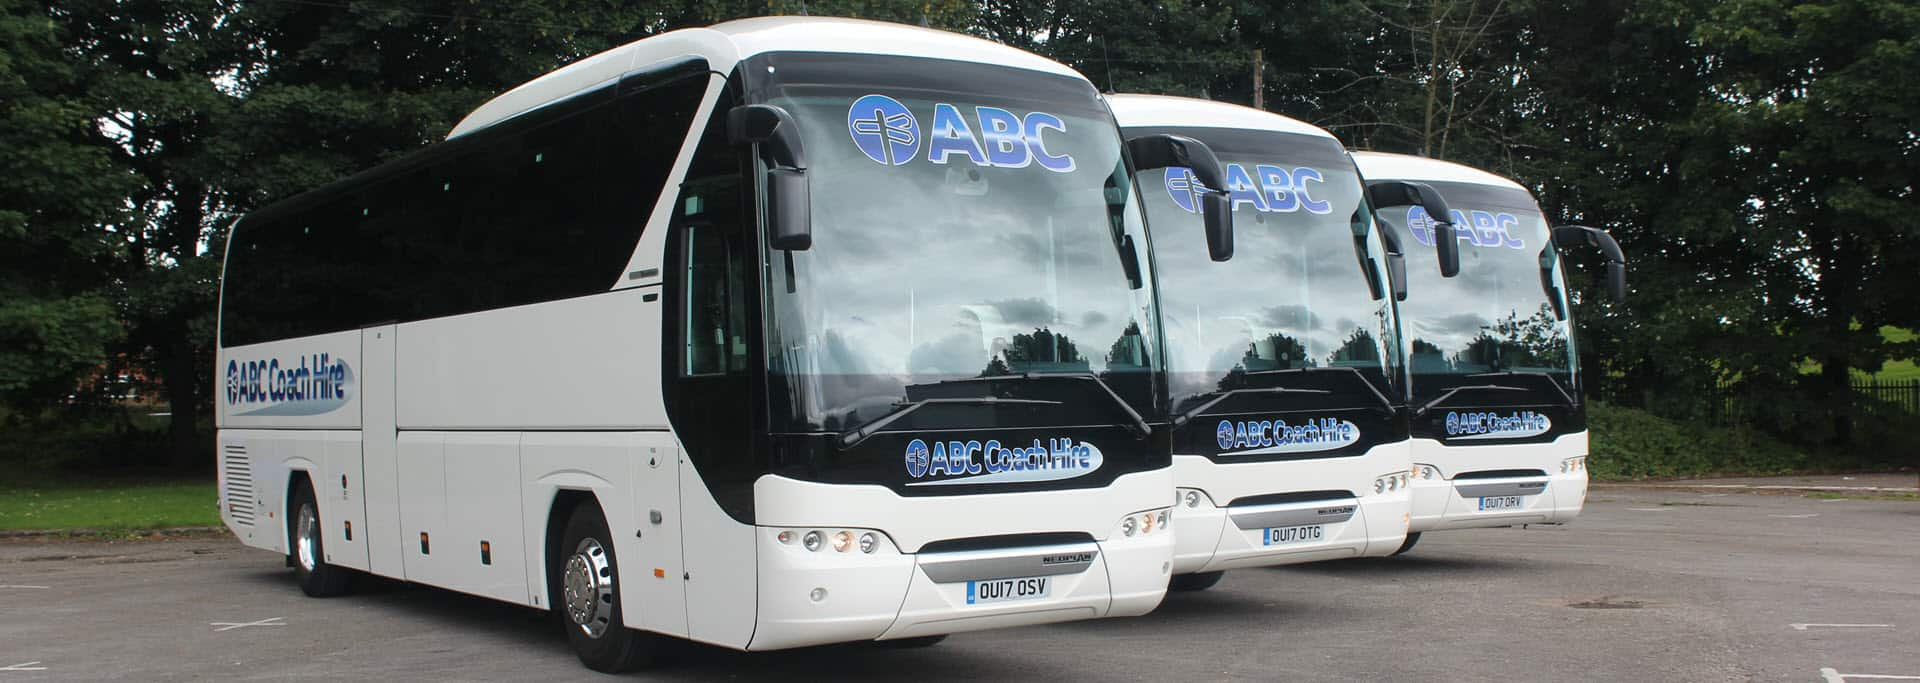 49-53 Seater Coach Hire - ABC Coaches - Manchester & the North West